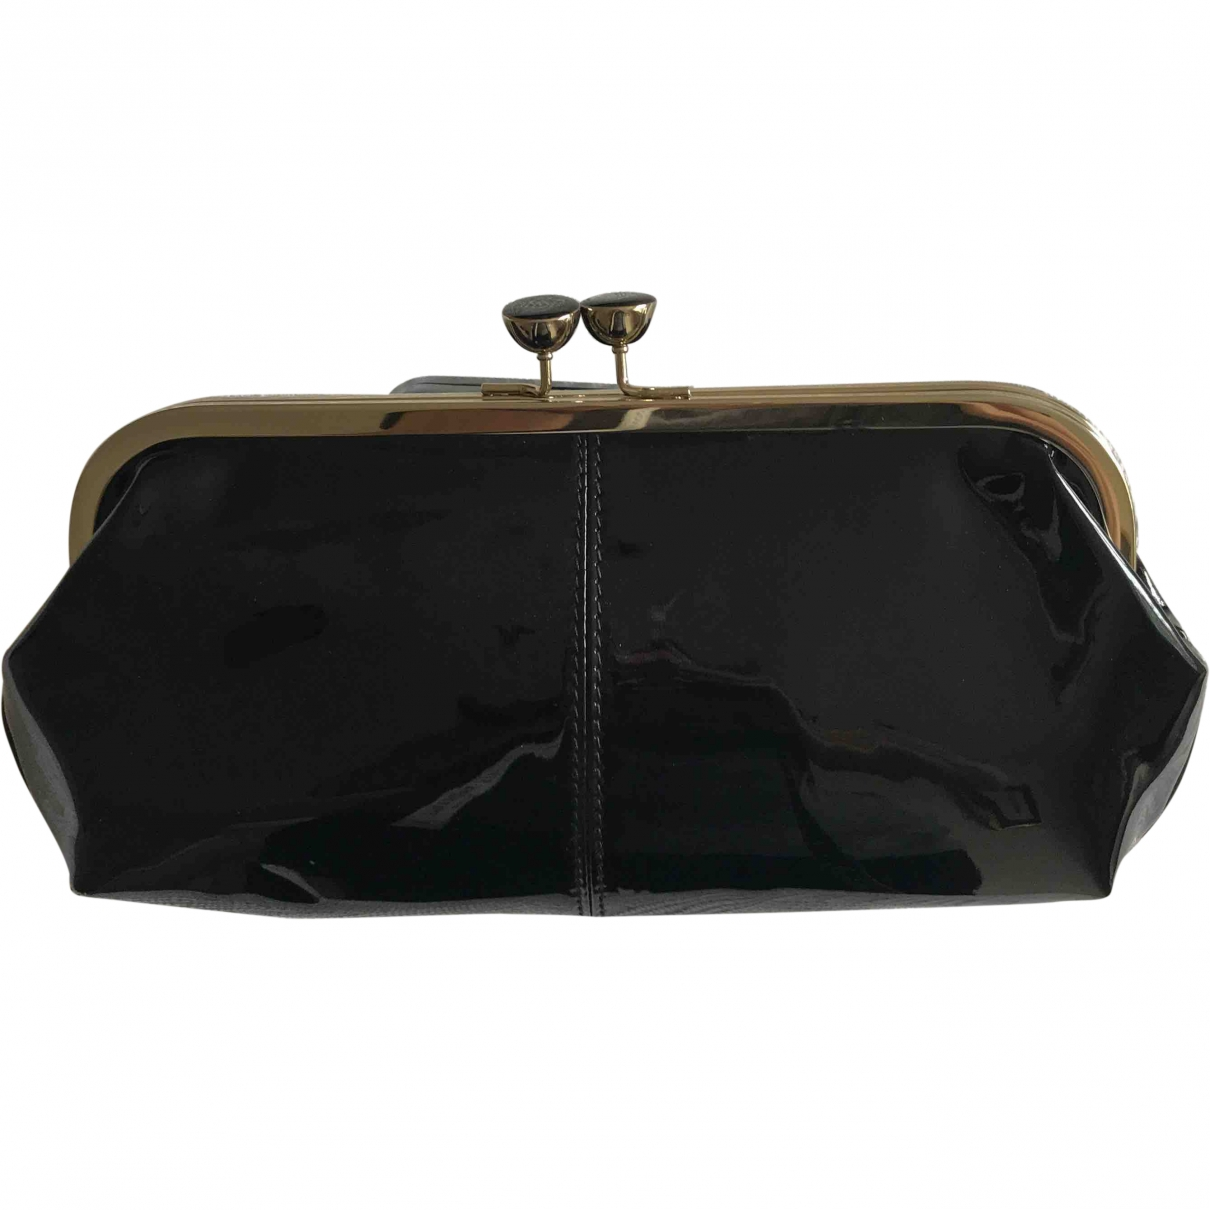 Ted Baker \N Black Leather Clutch bag for Women \N